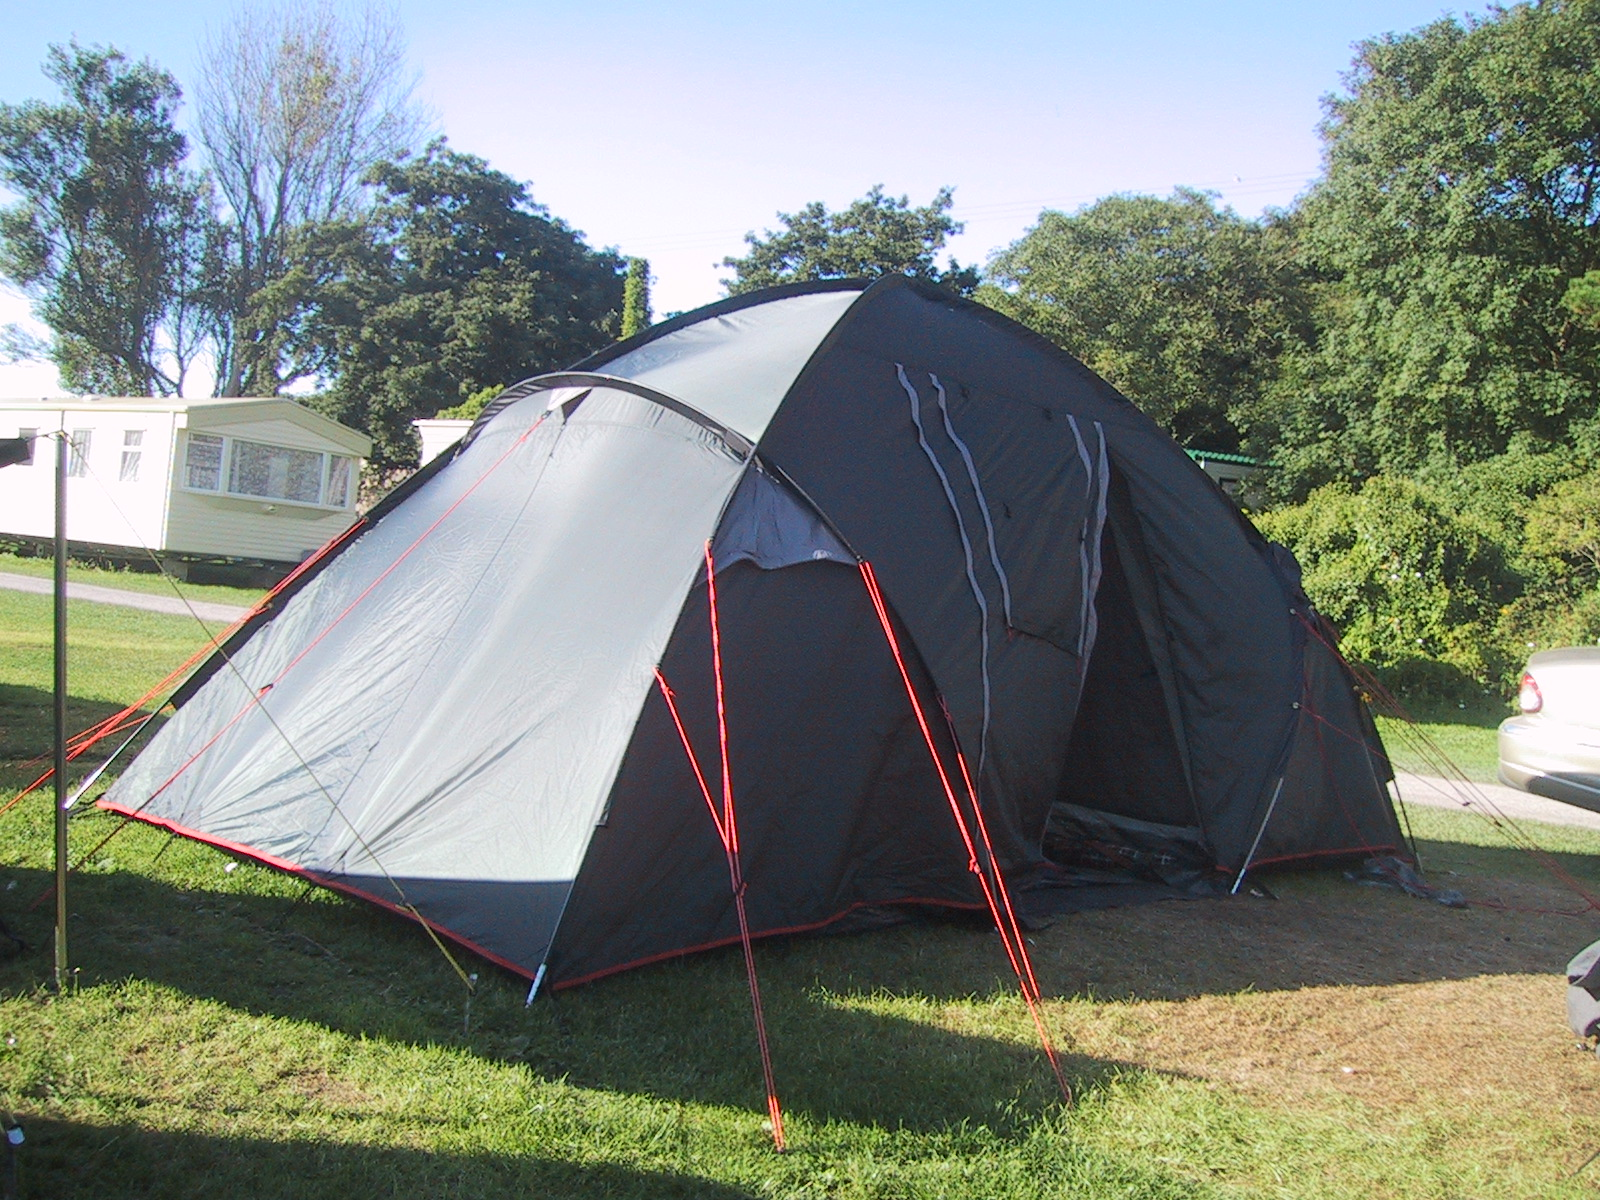 File:Dome tent.JPG - Wikipedia